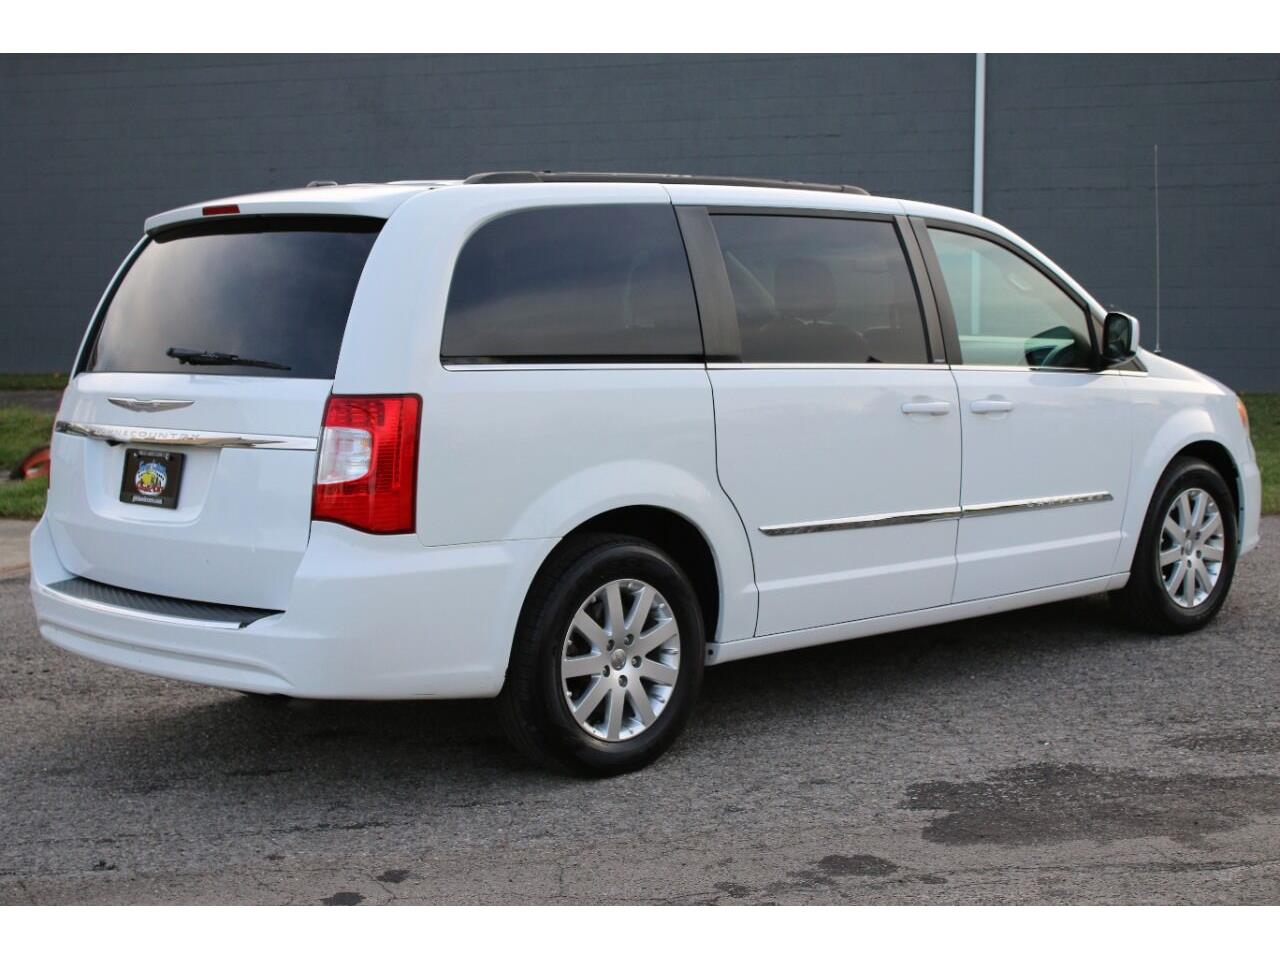 2014 Chrysler Town & Country (CC-1386196) for sale in Hilton, New York